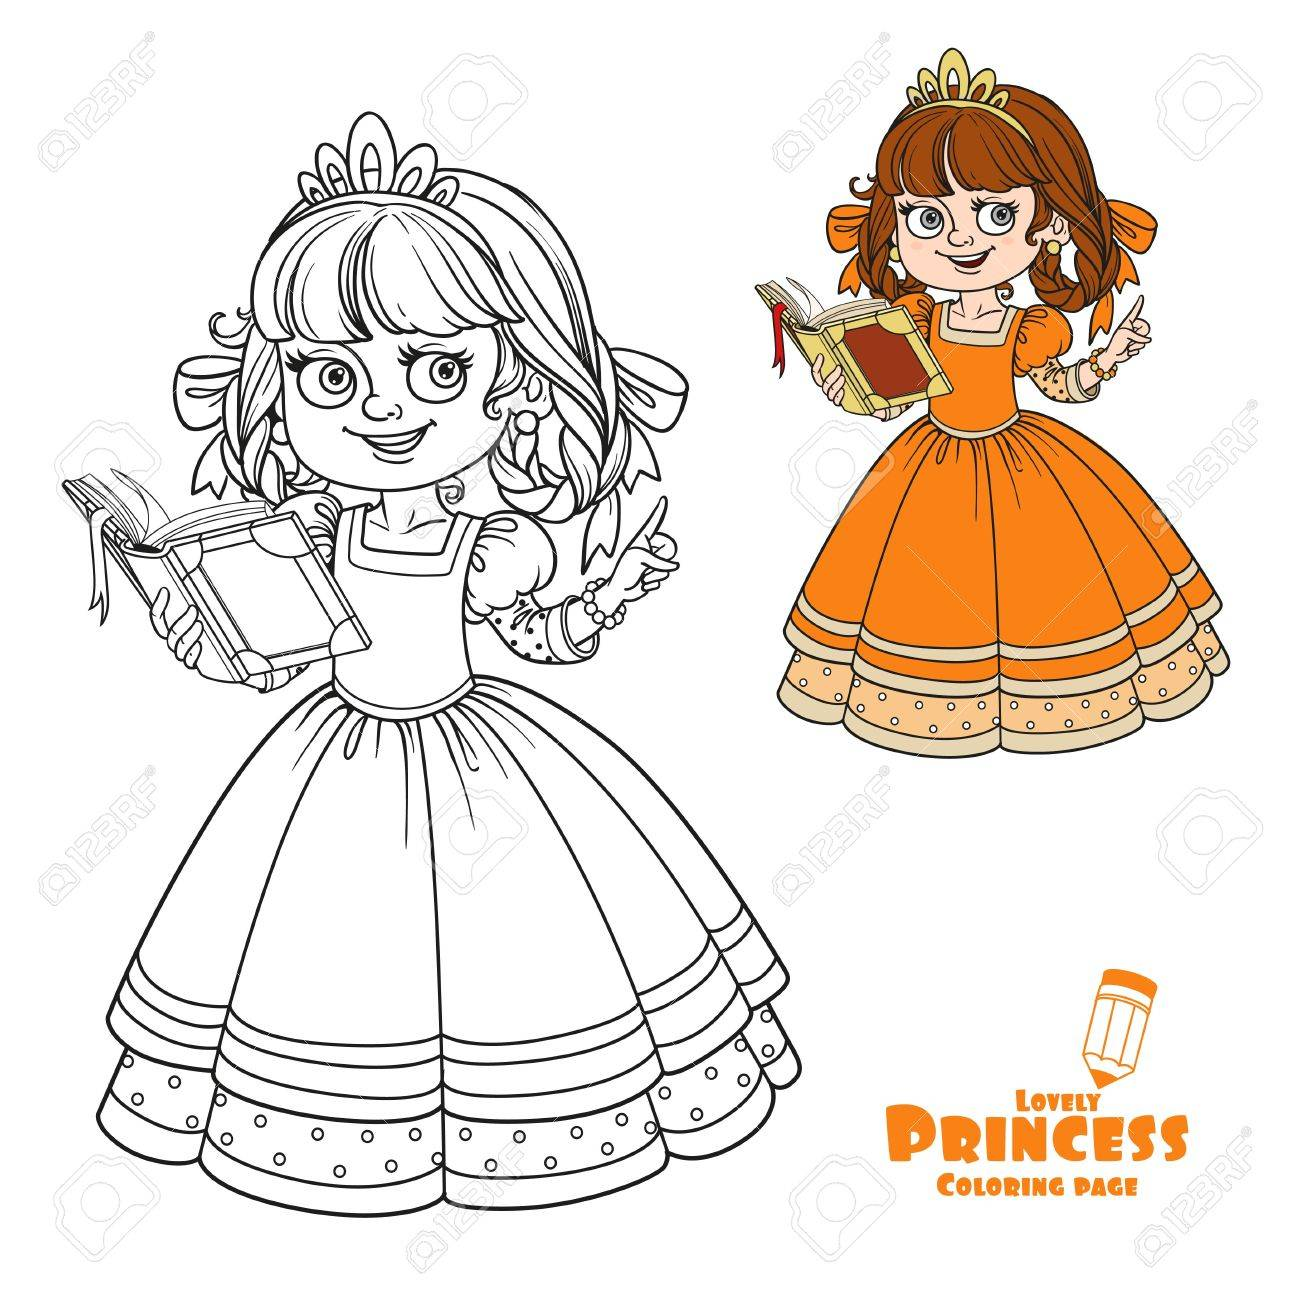 Coloring book quinn - Quinn Beautiful Princess Read Book Color And Outlined Picture For Coloring Book On White Background